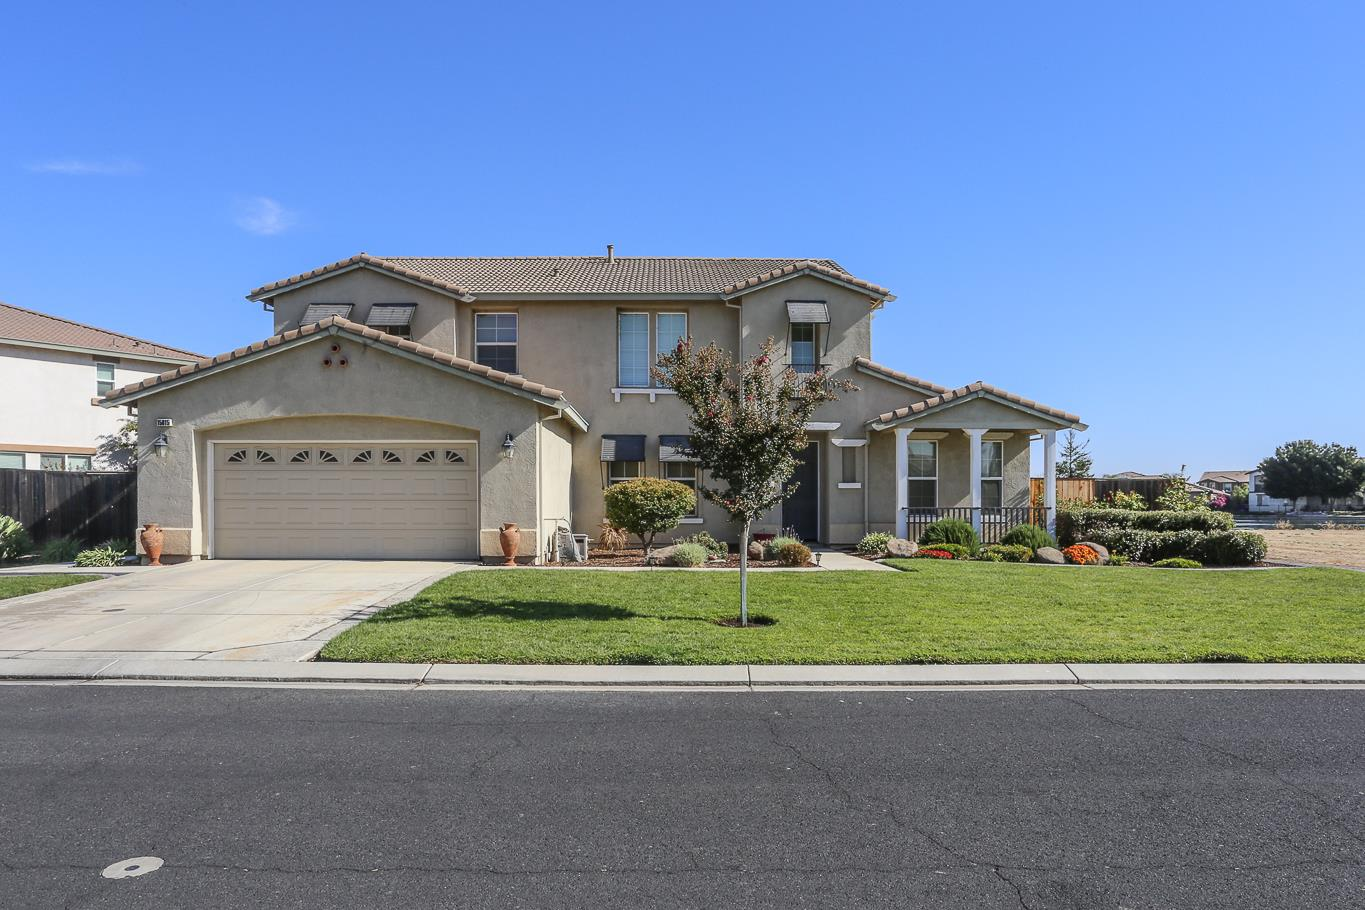 Single Family Home for Sale at 15015 Torrey Pines 15015 Torrey Pines Chowchilla, California 93610 United States